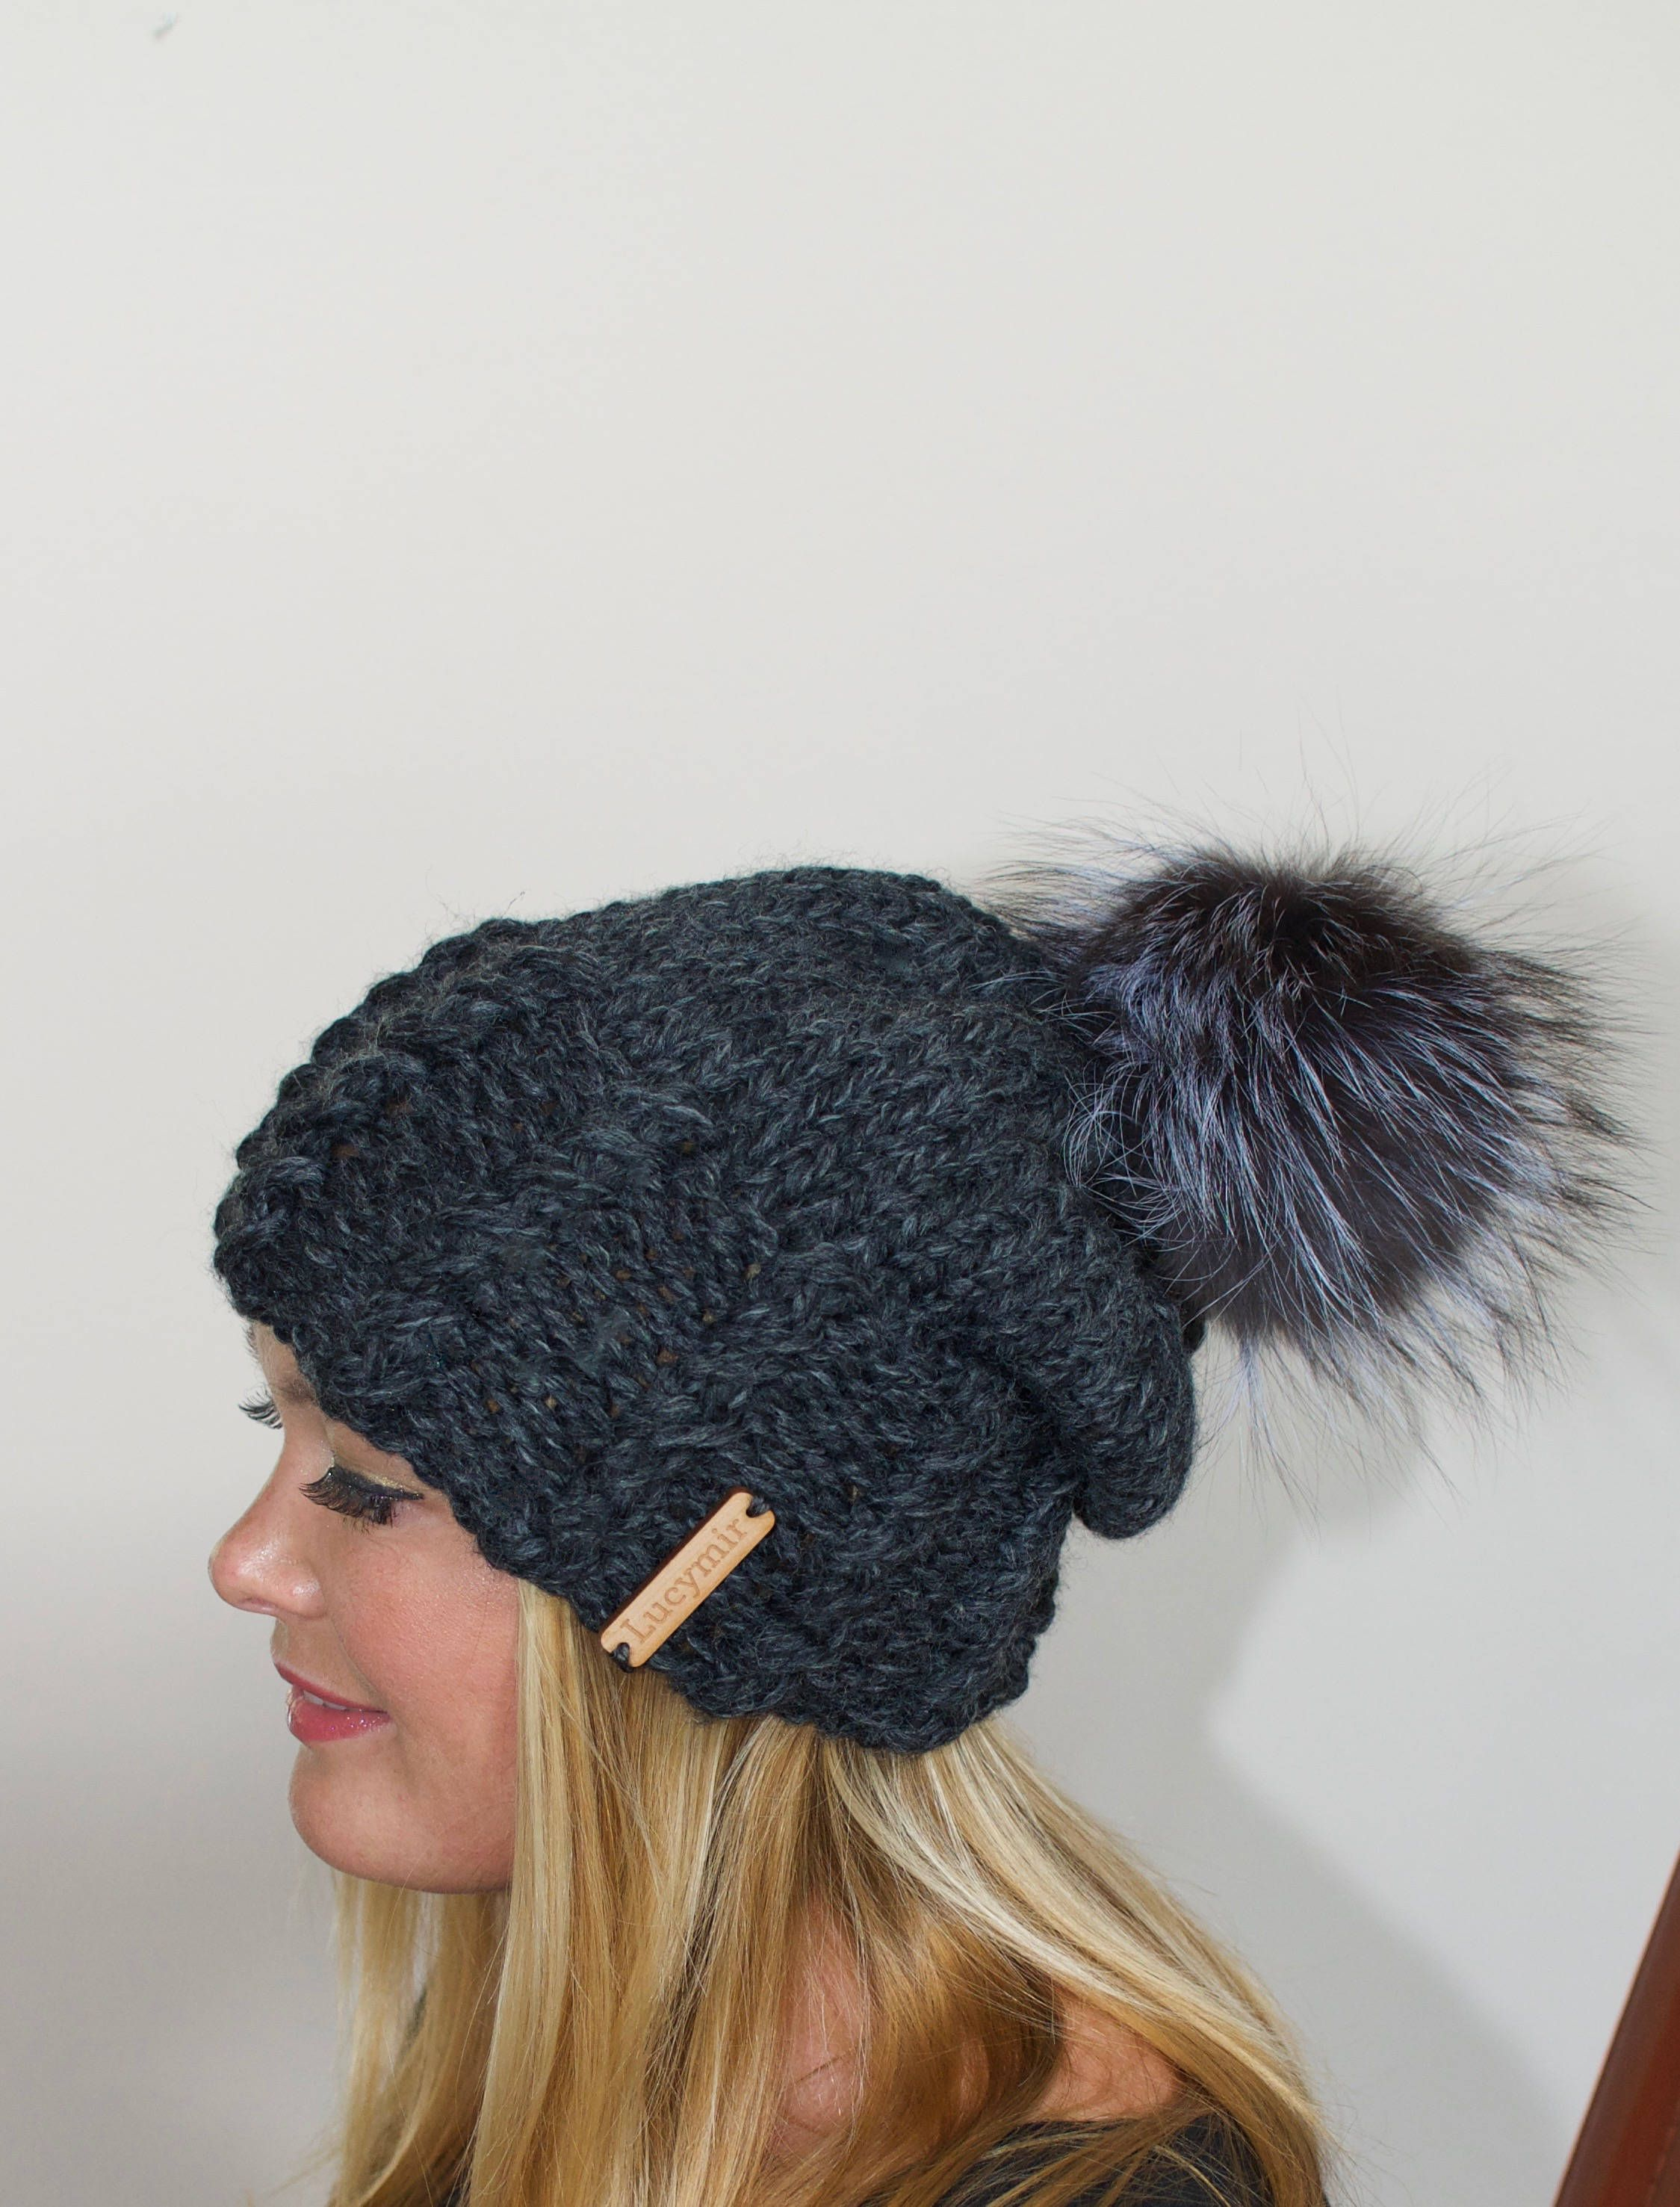 cefc0a660cd8ea Pompom Beanie Fur Pompom Slouchy Beanie Hat Chunky Women Hat Winter Hat  CHOOSE COLORS Charcoal Gray Chunky Knit Hat Christmas Gift under 100 by  lucymir on ...